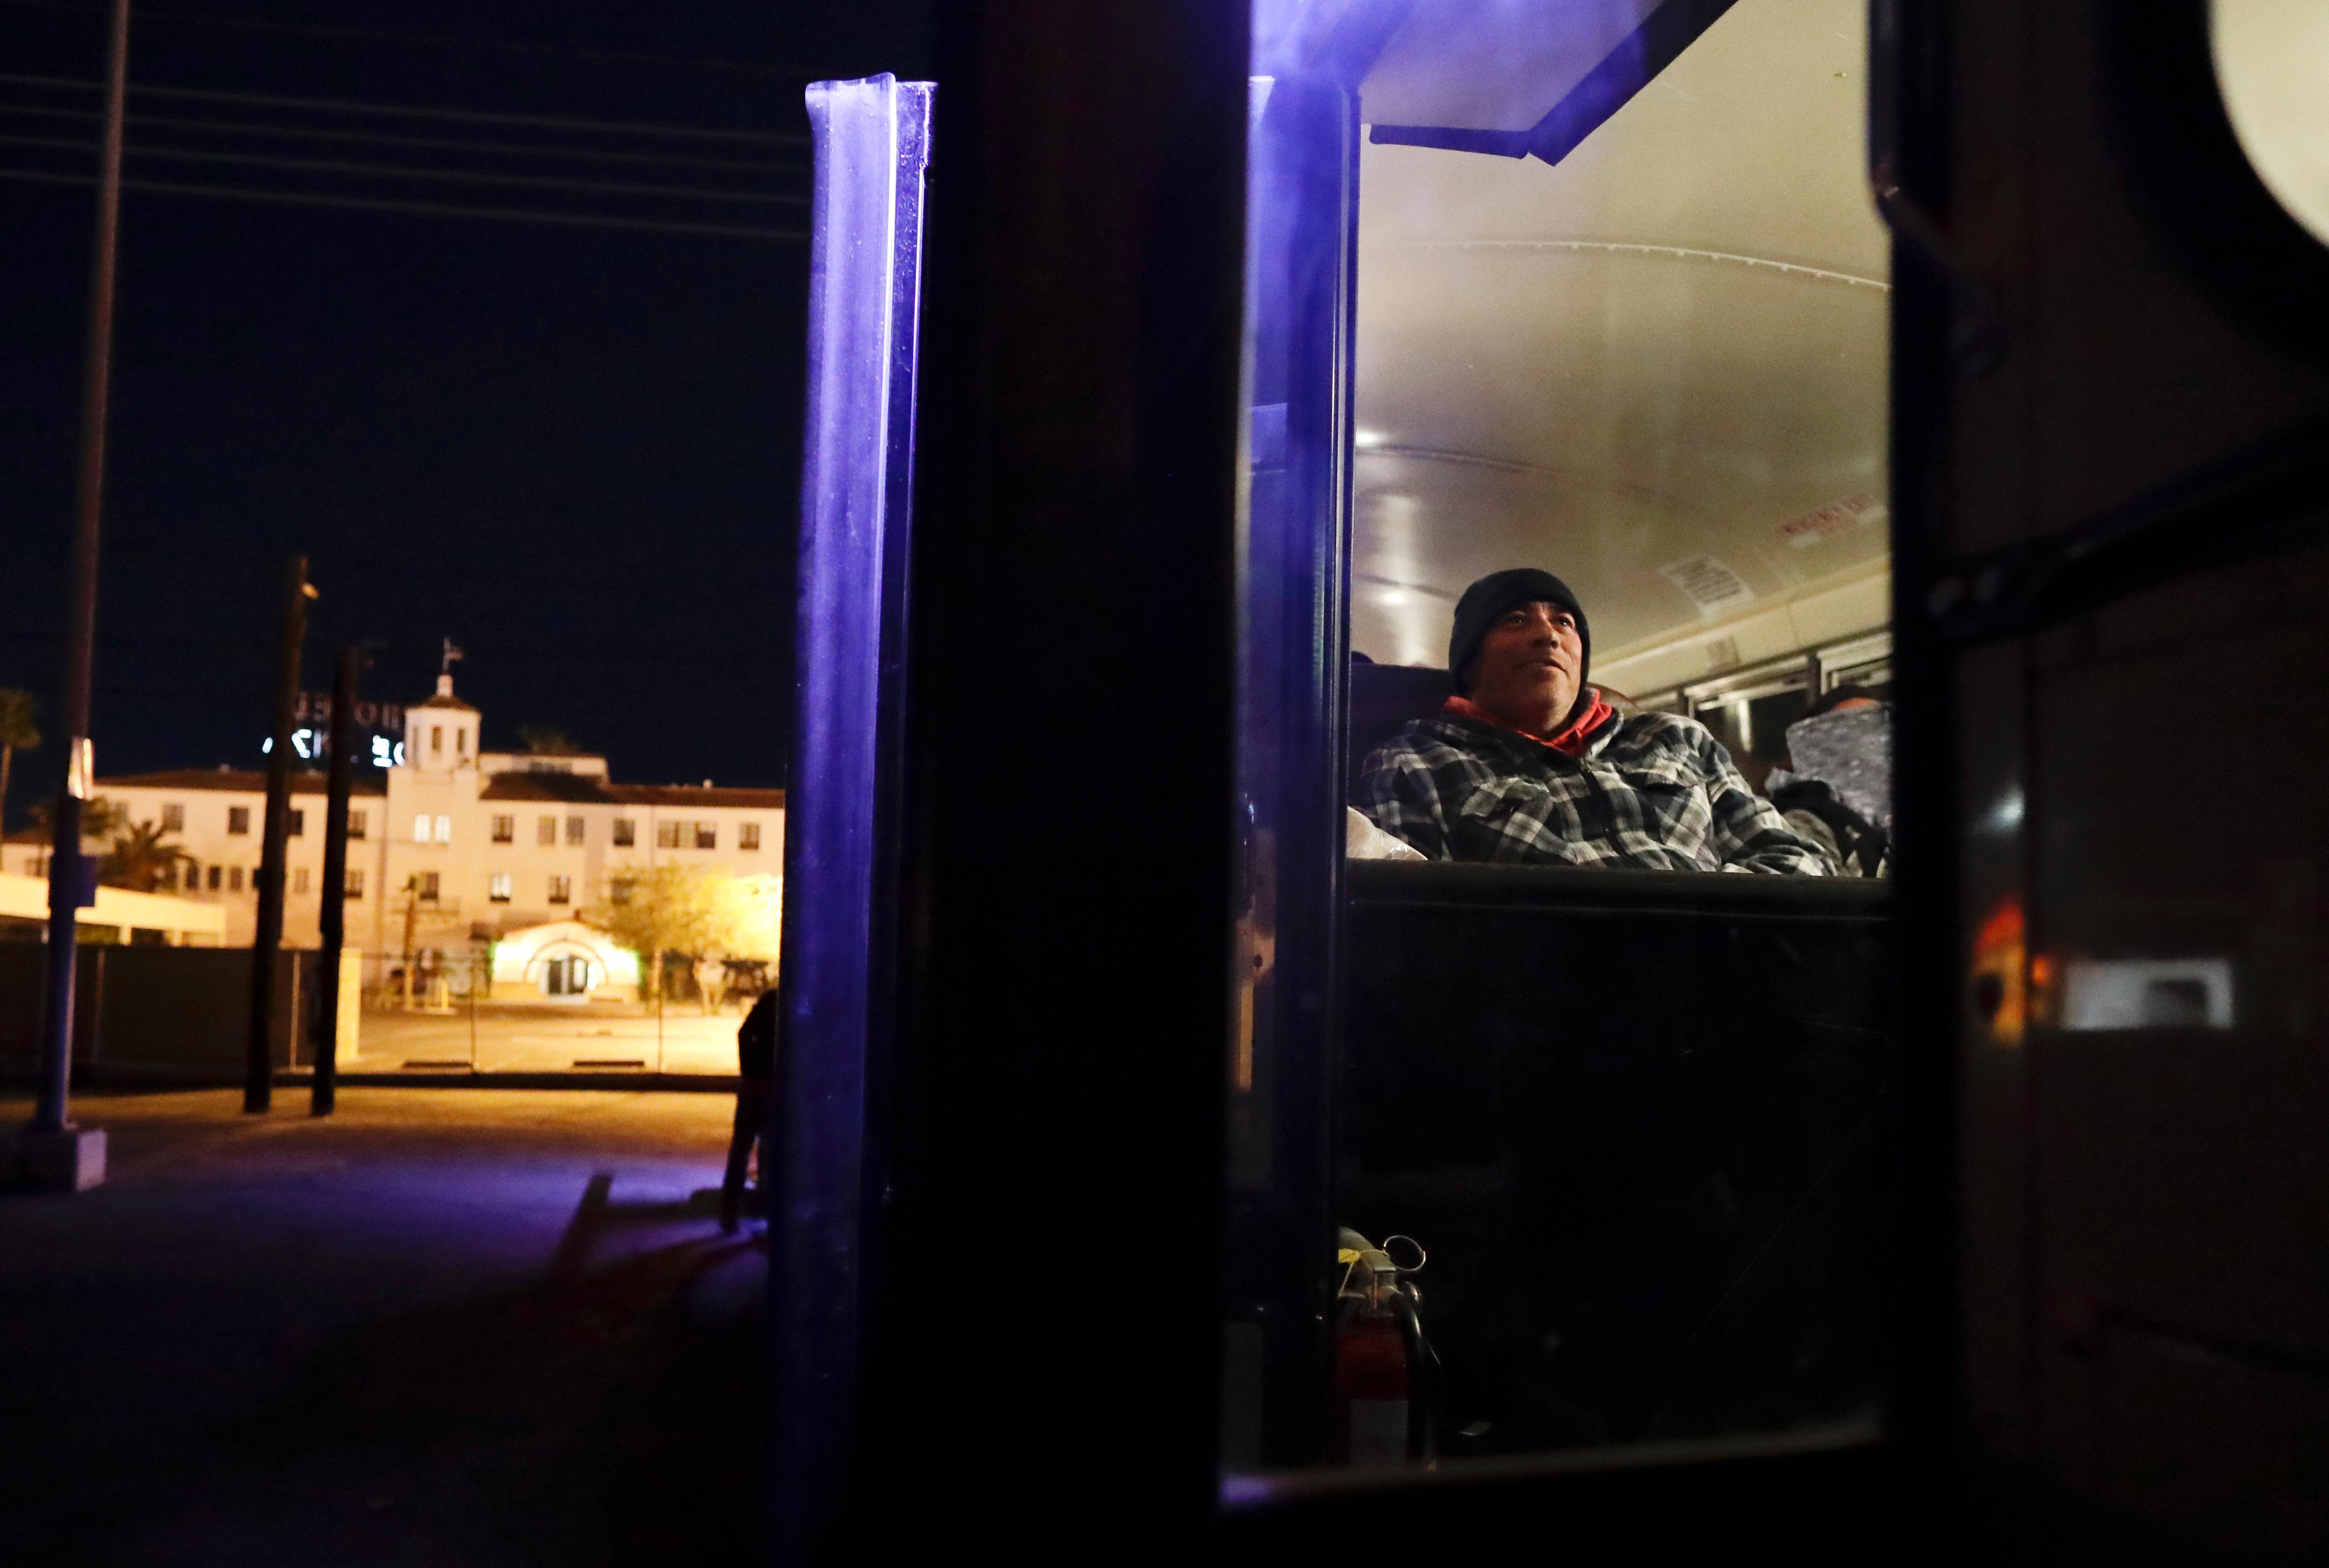 In this March 6, 2018 photo, farmworker Jose Angel Valenzuela rests as he waits before dawn in a bus that will take him and his crew from the border in Calexico, Calif, to a cabbage field ready for harvest outside of town. Valenzuela, who owns a house in Mexicali and is working his second harvest in Imperial Valley, earns more picking cabbage in an hour than he did in a day at a factory in Mexico. (AP Photo/Gregory Bull)